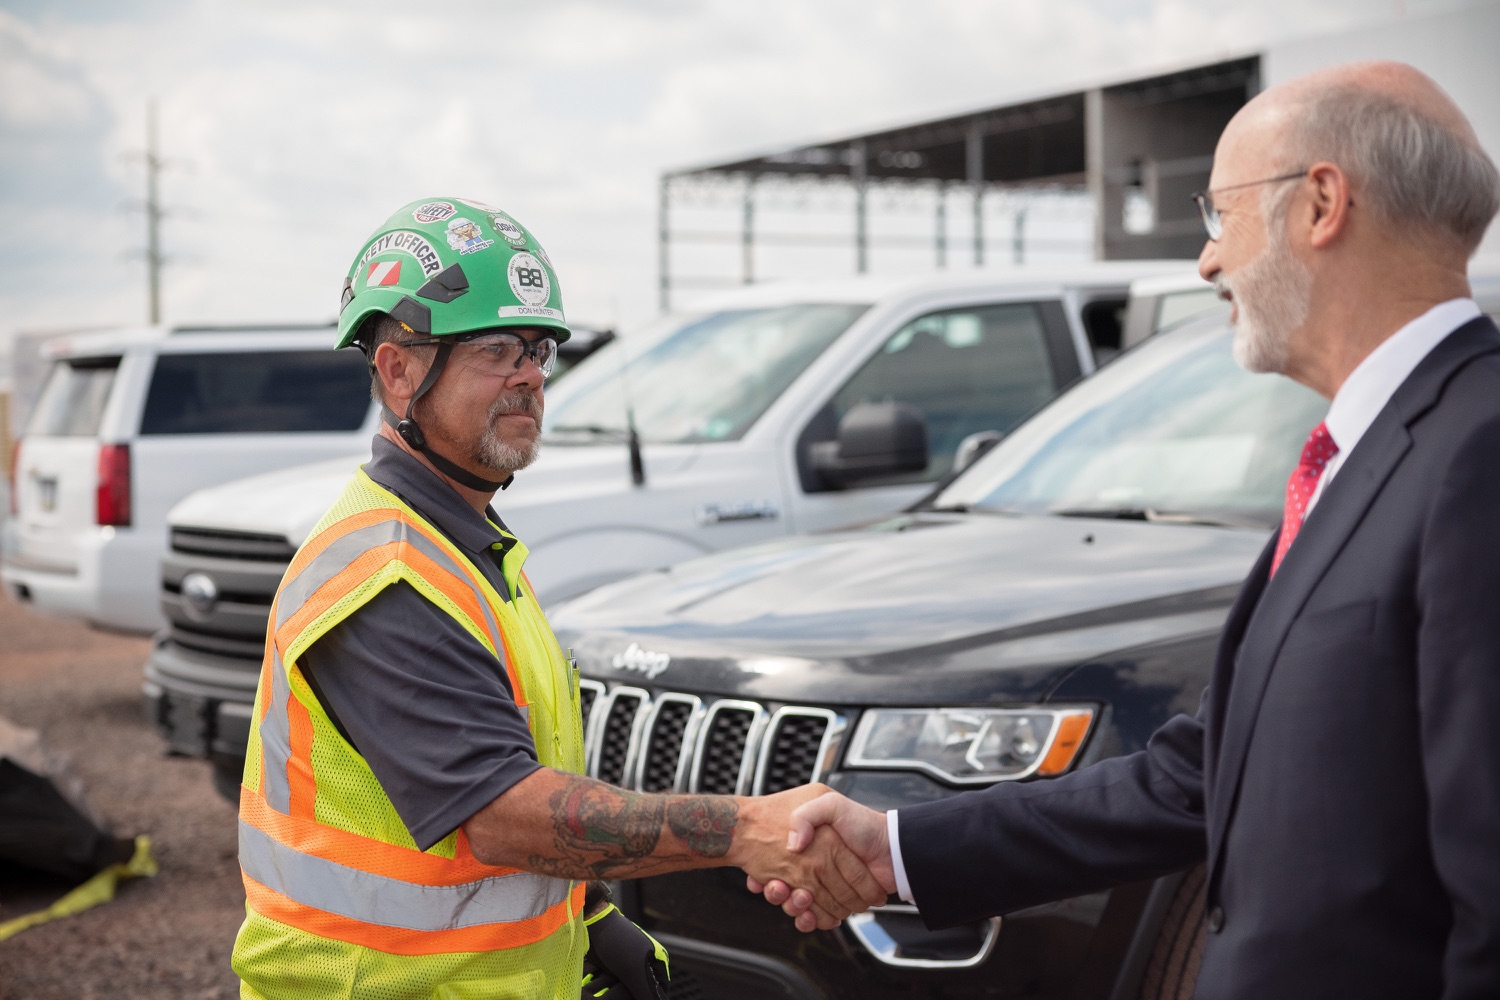 """<a href=""""https://filesource.wostreaming.net/commonwealthofpa/photo/20126_gov_economicDevelopment_dz_010.jpg"""" target=""""_blank"""">⇣Download Photo<br></a>Pennsylvania Governor Tom Wolf greeting construction workers as he tours the site.  Governor Tom Wolf joined Clemens Food Group leaders, Agriculture Secretary Russell Redding, Sen. Maria Collett, Rep. Steve Malagari and members of the Governors Action Team today to tour the construction of the companys new facility in Montgomery County. The Wolf Administration supported the project which will expand the business operations and create new jobs in the region. Hatfield, PA   October 8, 2021"""